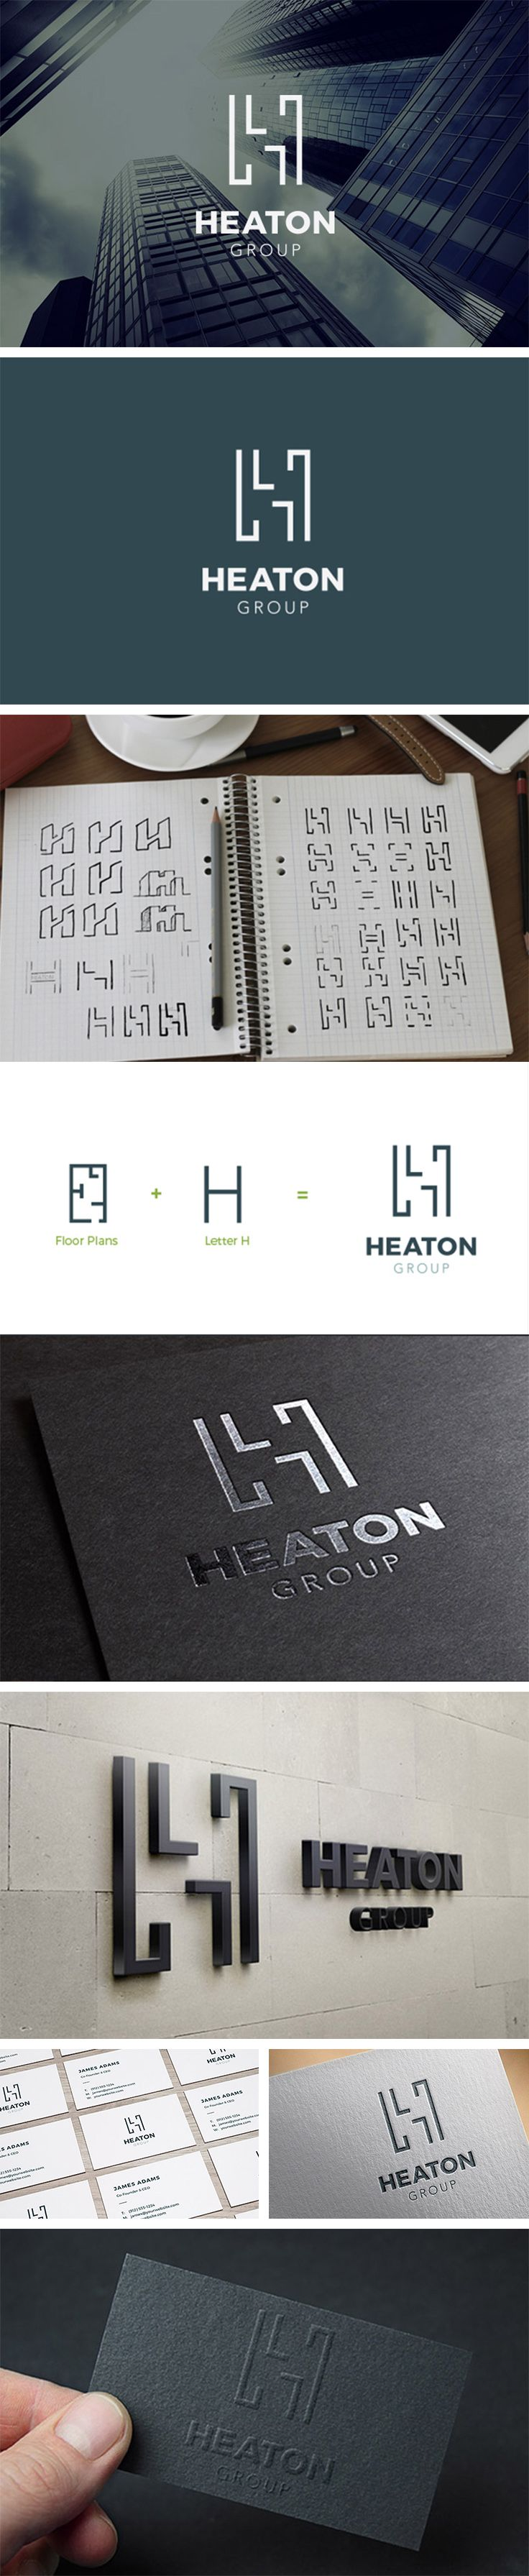 Logo Design, Brand Identity Heaton Group. Property Investment & Development, Real Estate   |   Letter H, Floor Plan, house, bold, builder, architect, geometric, shape, line, modern, minimalist, mark, monogram, inspiration   https://www.behance.net/gallery/33159225/Heaton-Group-Property-Development-Investment